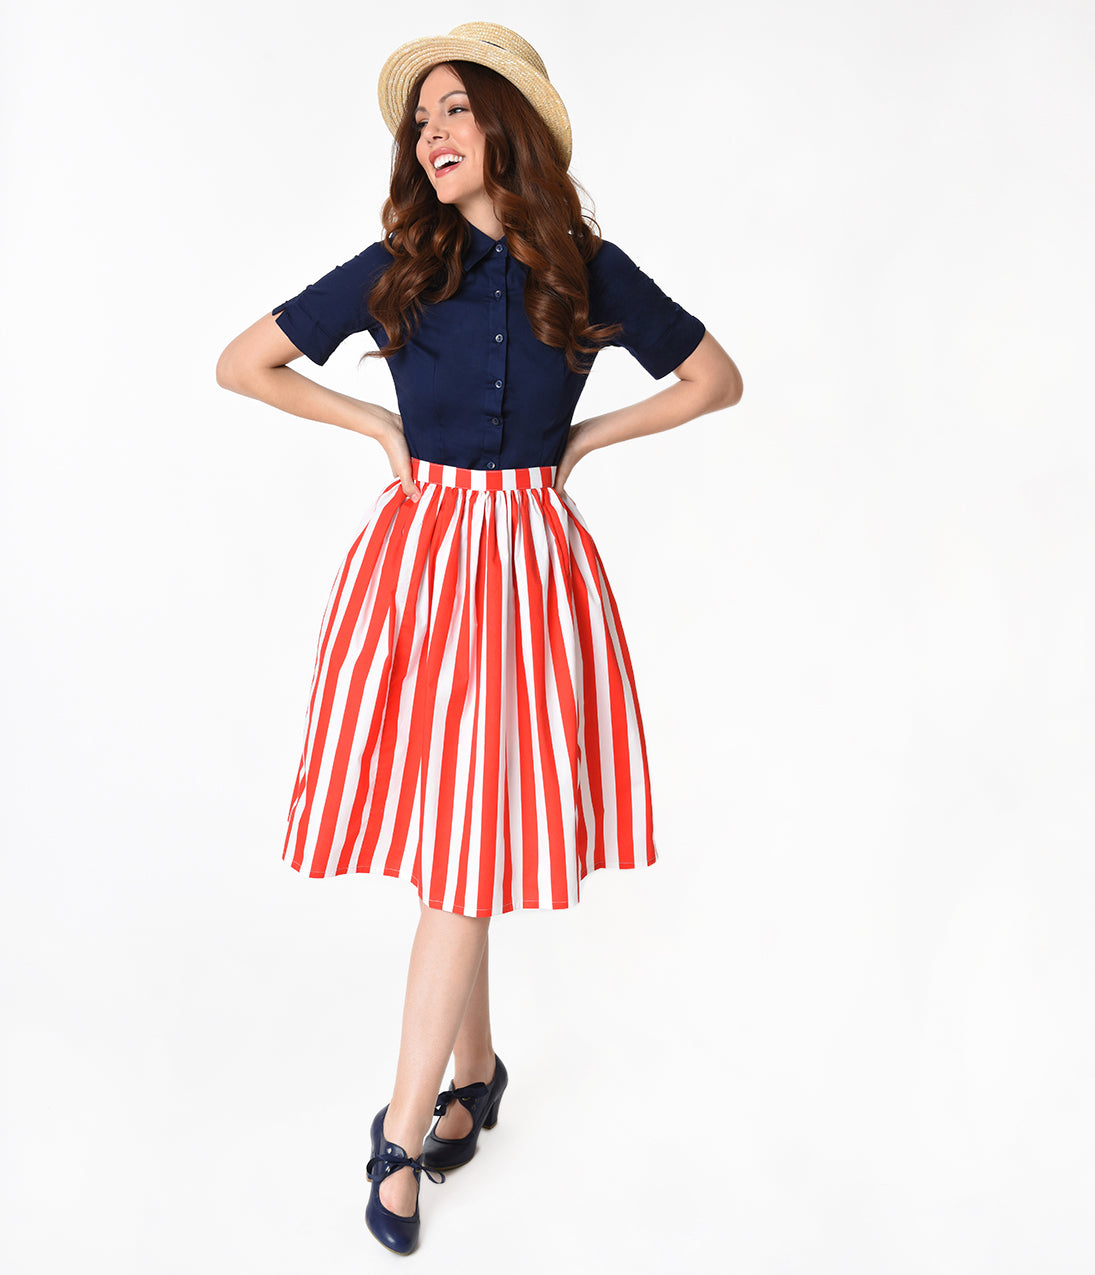 Sailor Dresses, Nautical Dress, Pin Up & WW2 Dresses Red  White Striped Gathered Cotton Swing Skirt $42.00 AT vintagedancer.com